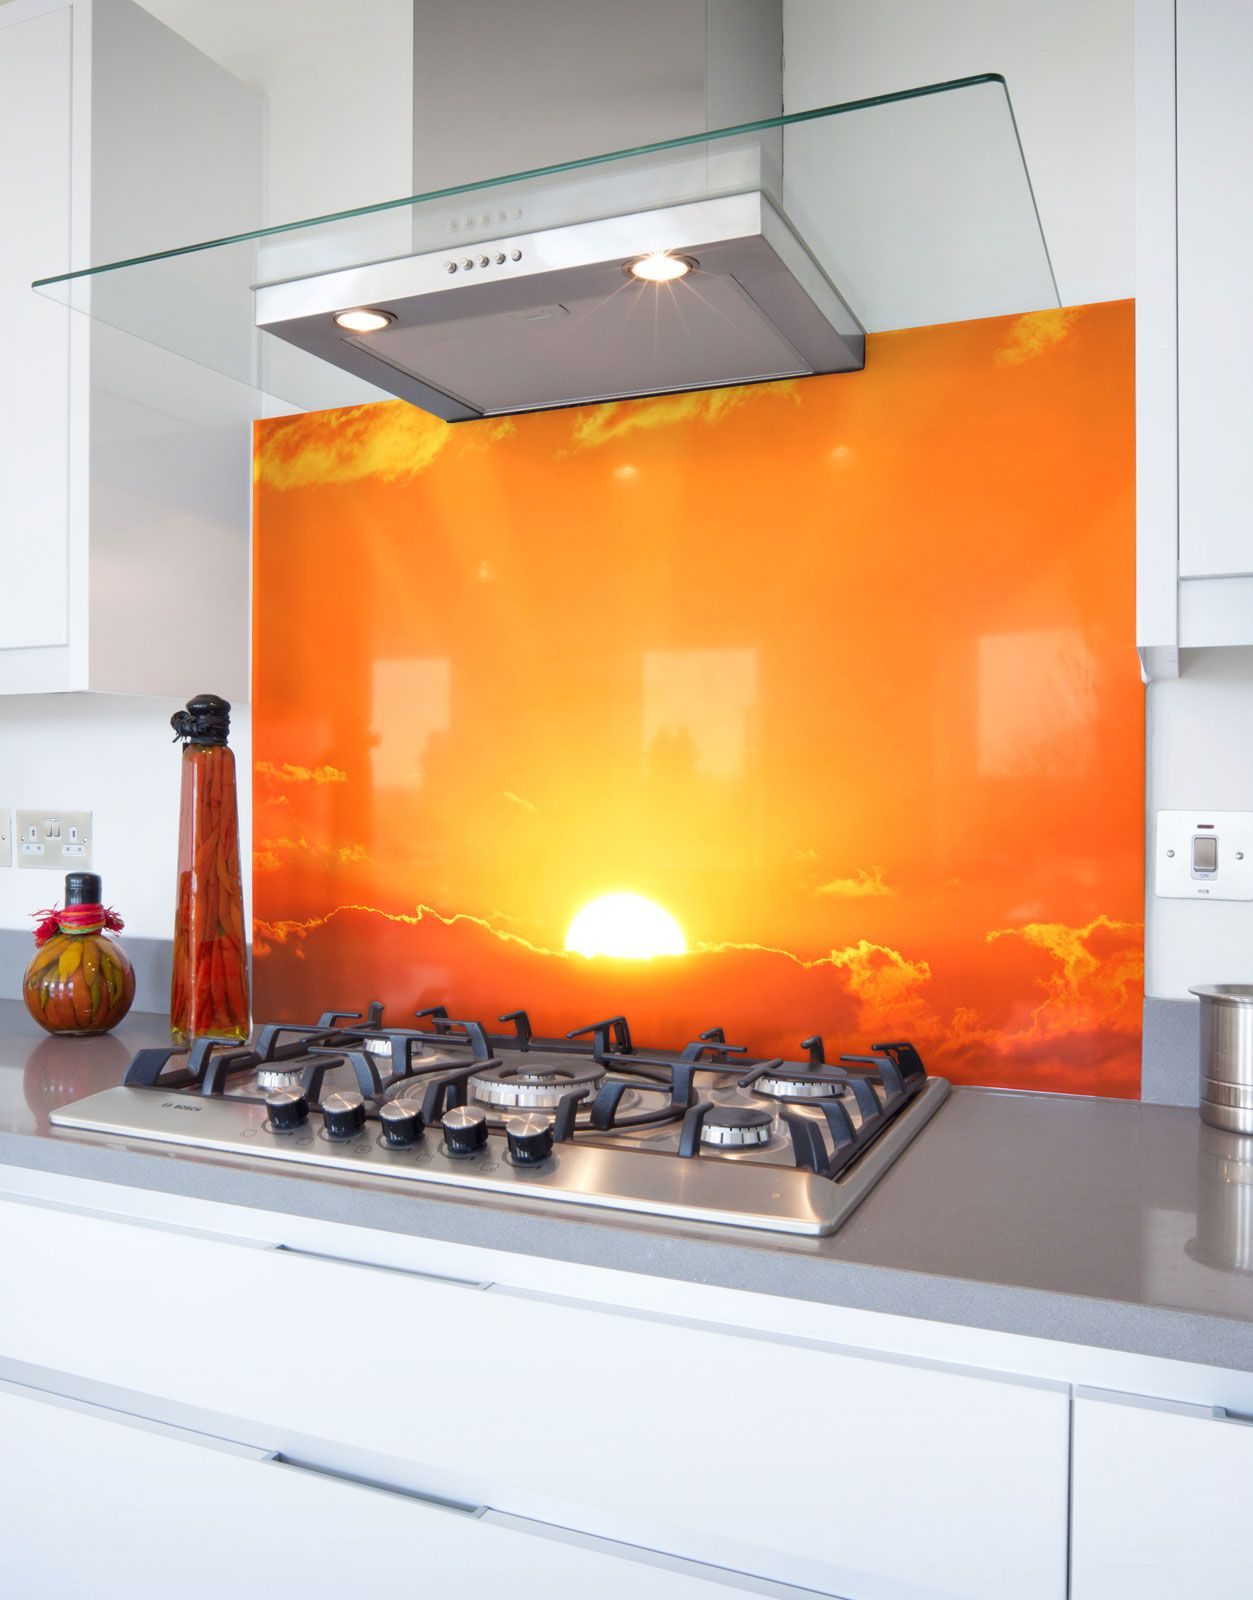 Bright Orange Sunrise Printed Glass Hob Splashback Hob